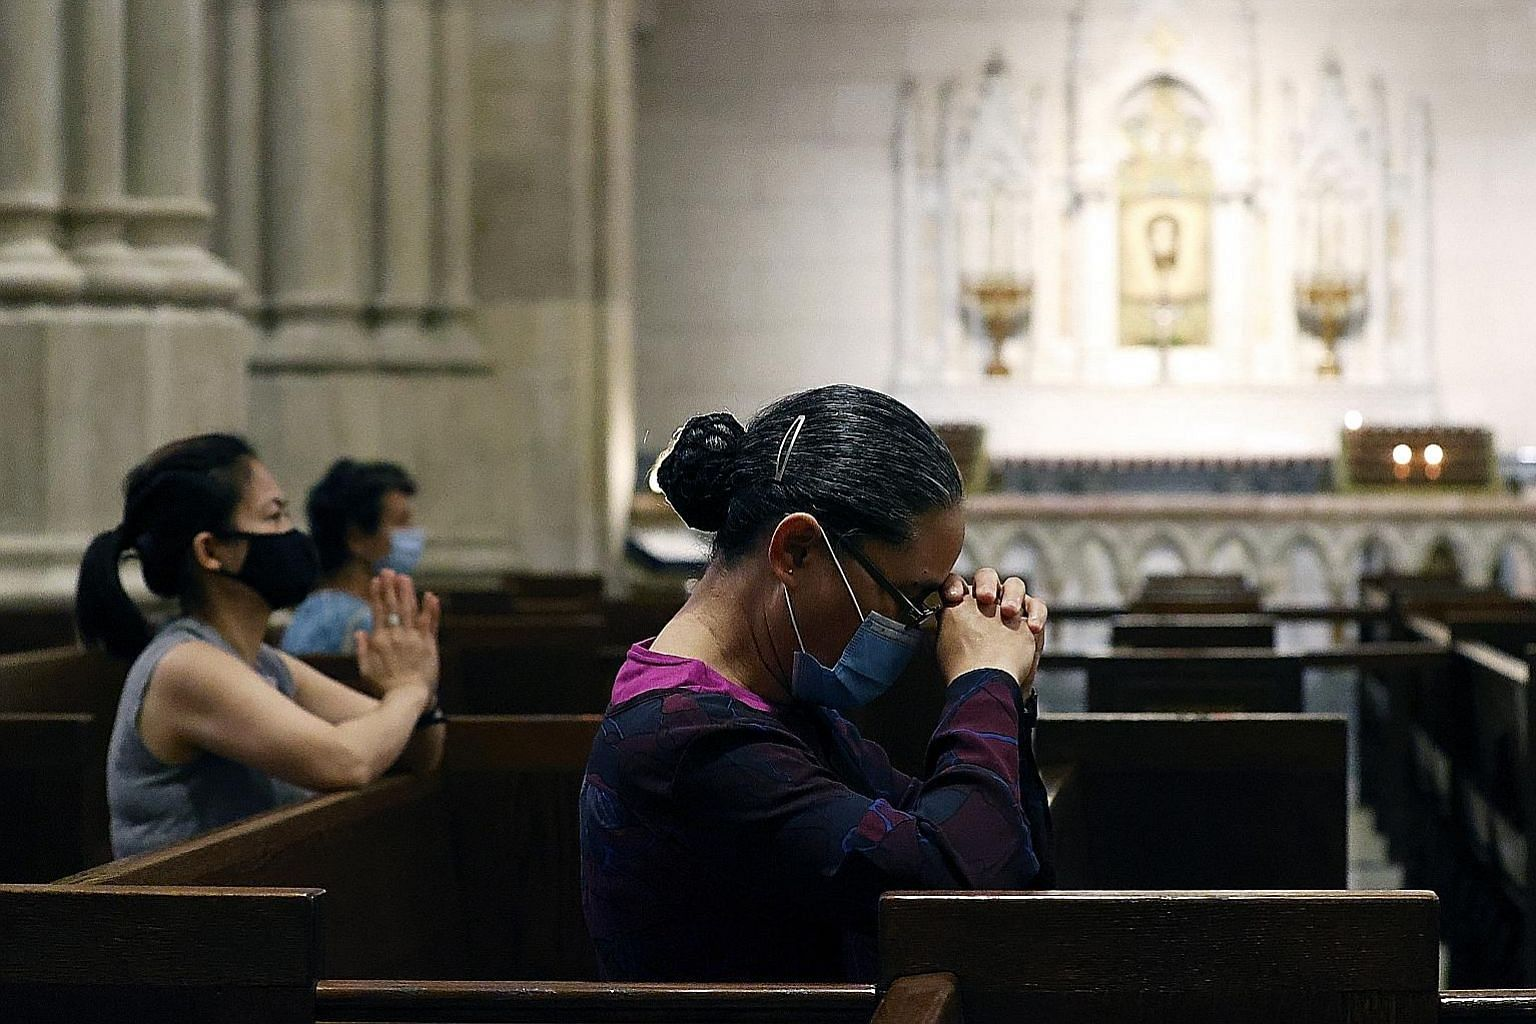 St Patrick's Cathedral holding its first public mass since March with a limited number of parishioners in New York last Sunday. It had stopped in-person attendance because of the coronavirus pandemic, which shut down public worship at mosques, temple